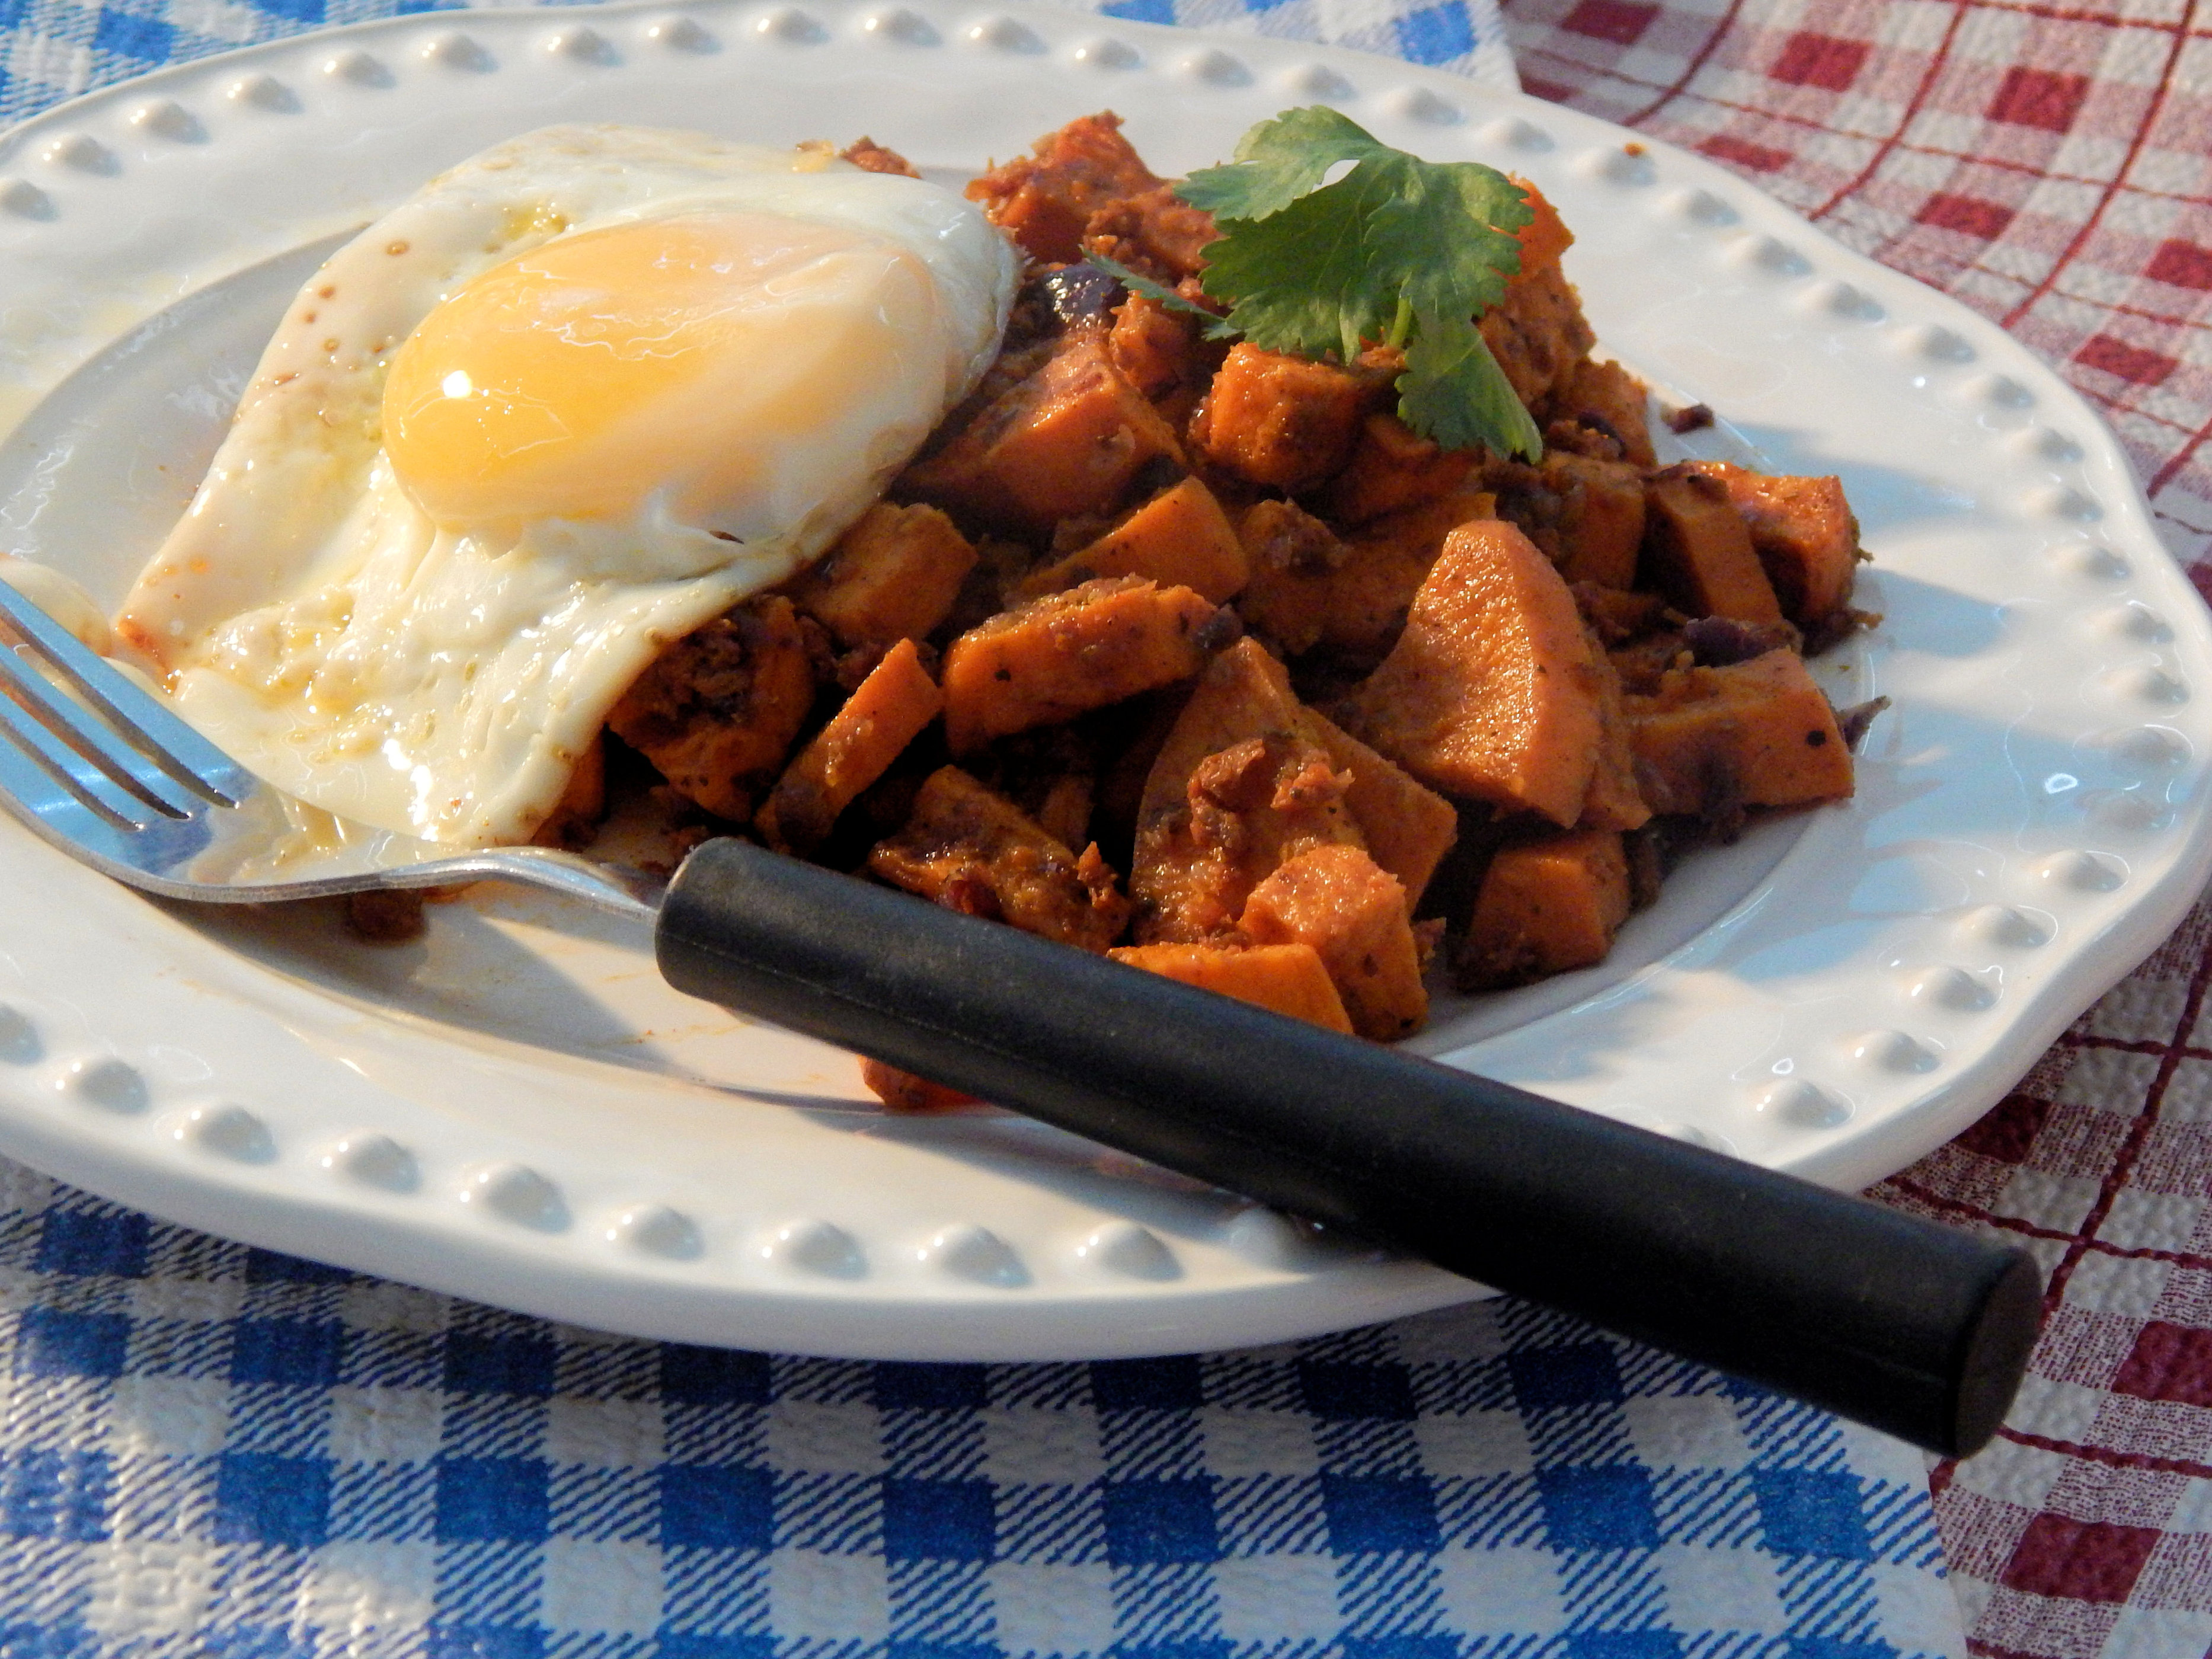 """Cubes of tender sweet potato are seasoned with herbs and spices and combined with crispy pieces of chorizo in this delicious breakfast dish that pairs well with any kind of eggs. """"This had a nice heat to it,"""" says Allrecipes Allstar Carrie C. """"The sweet potatoes really balance it out."""""""